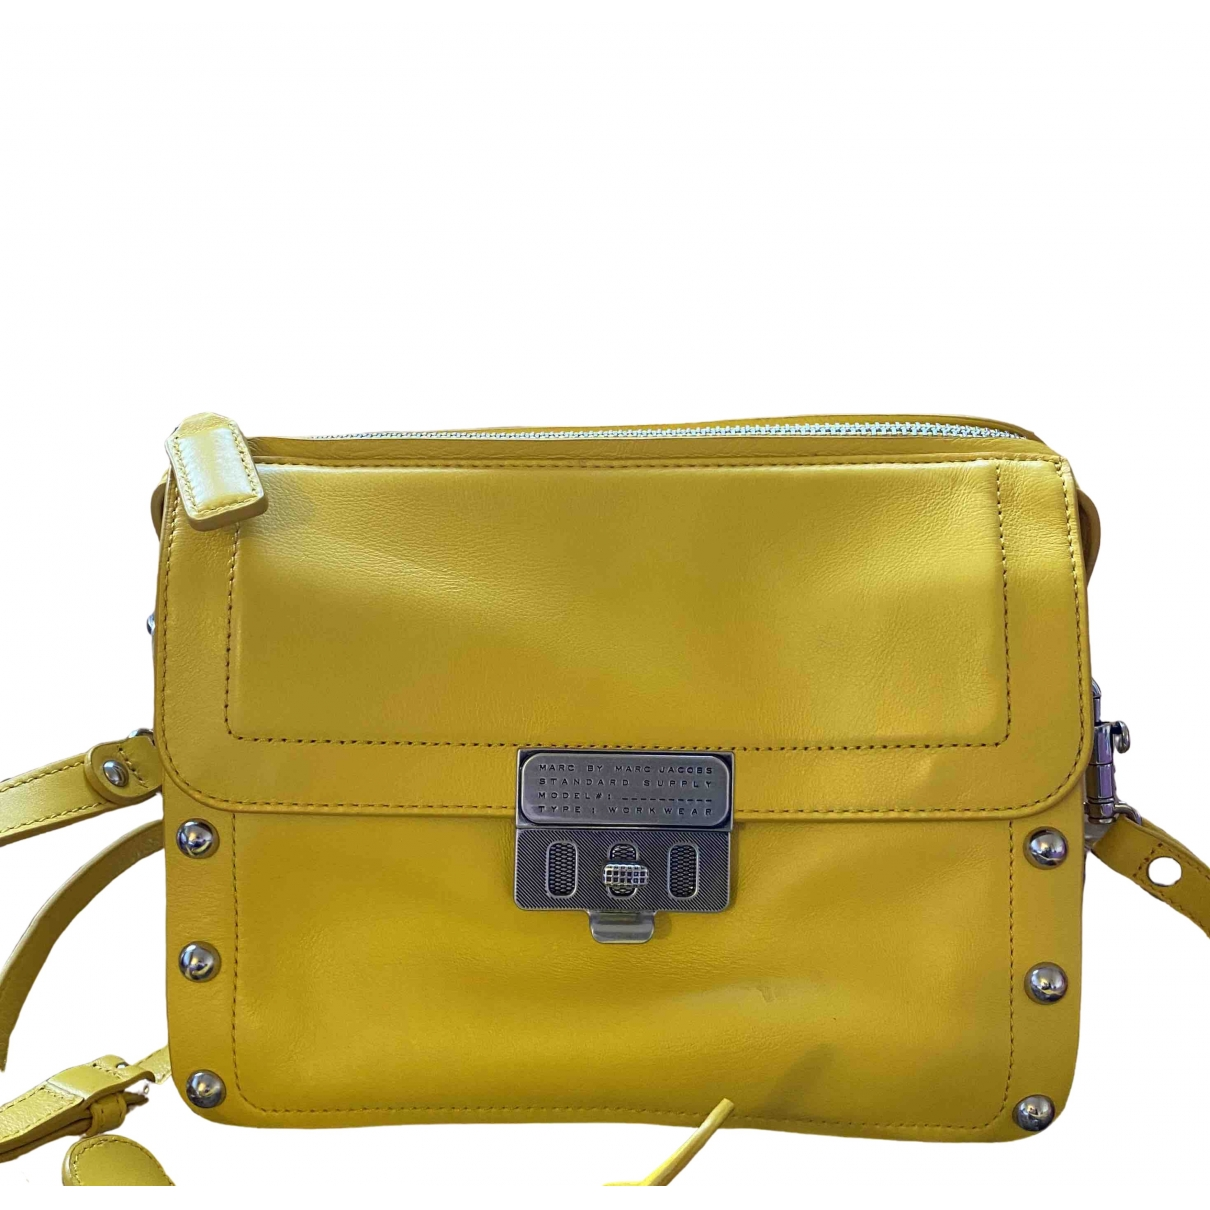 Marc By Marc Jacobs \N Yellow Patent leather handbag for Women \N